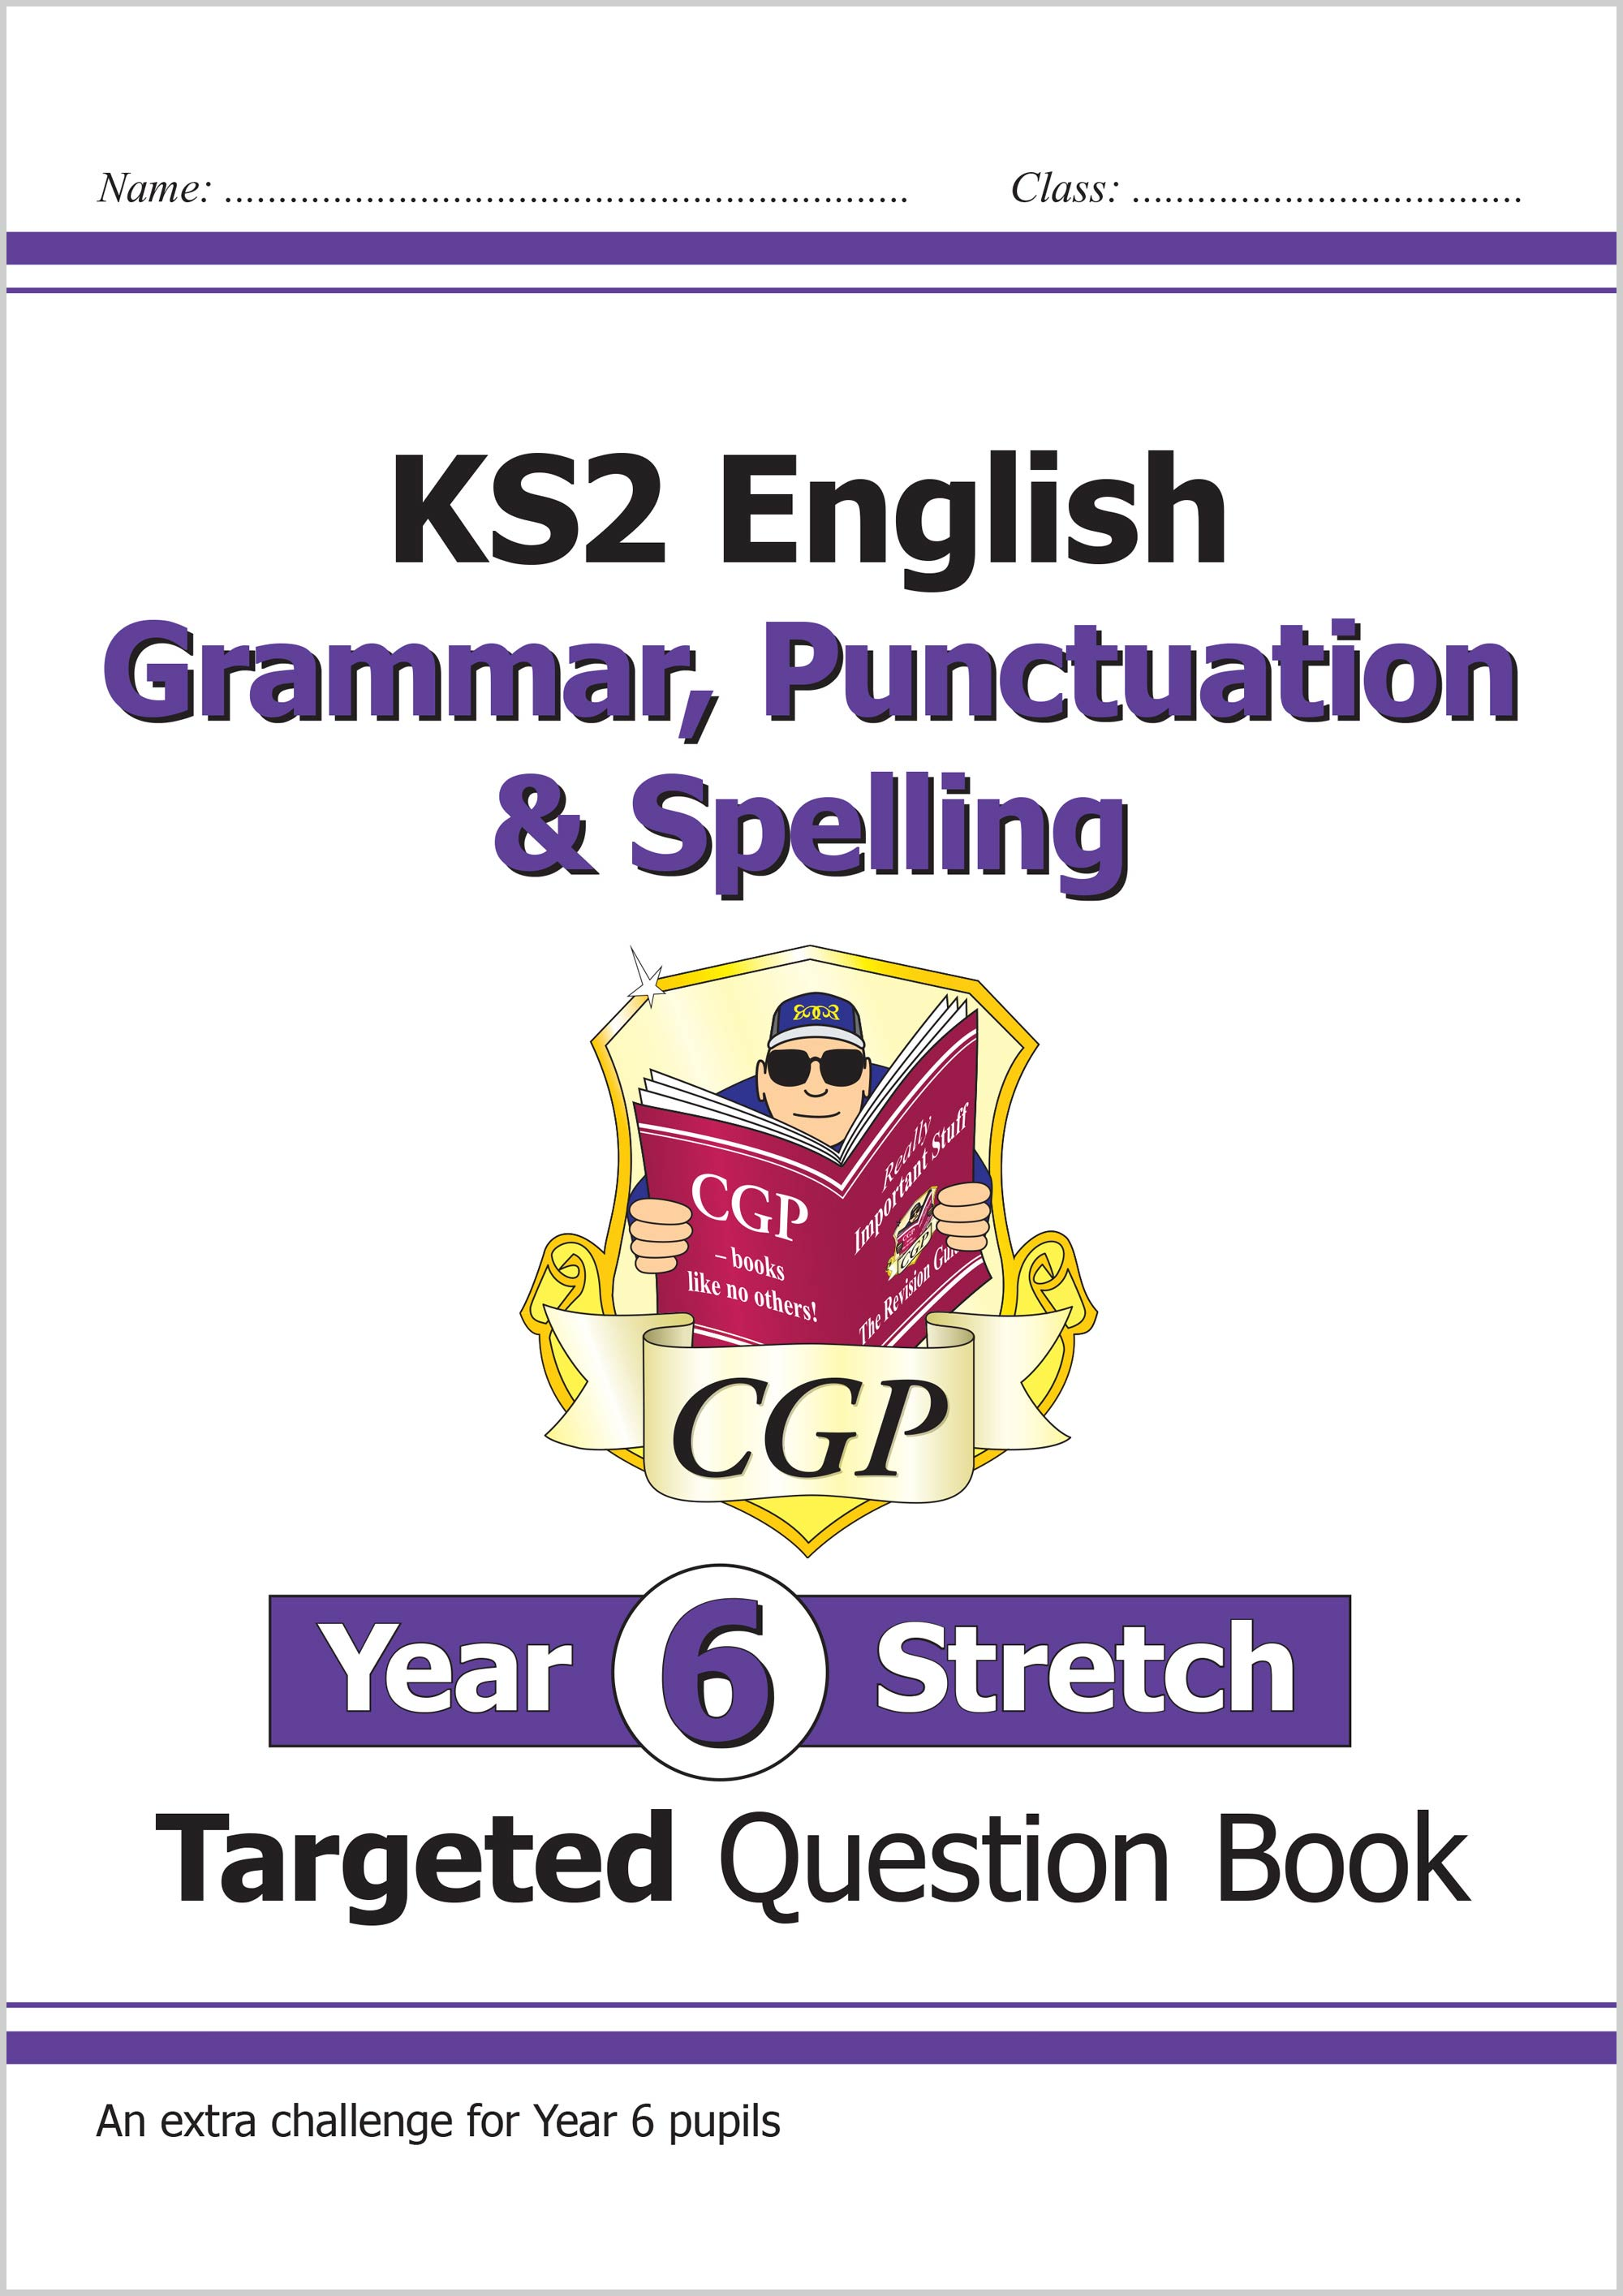 EG6HW21 - KS2 English Targeted Question Book: Challenging Grammar, Punctuation & Spelling - Year 6 S